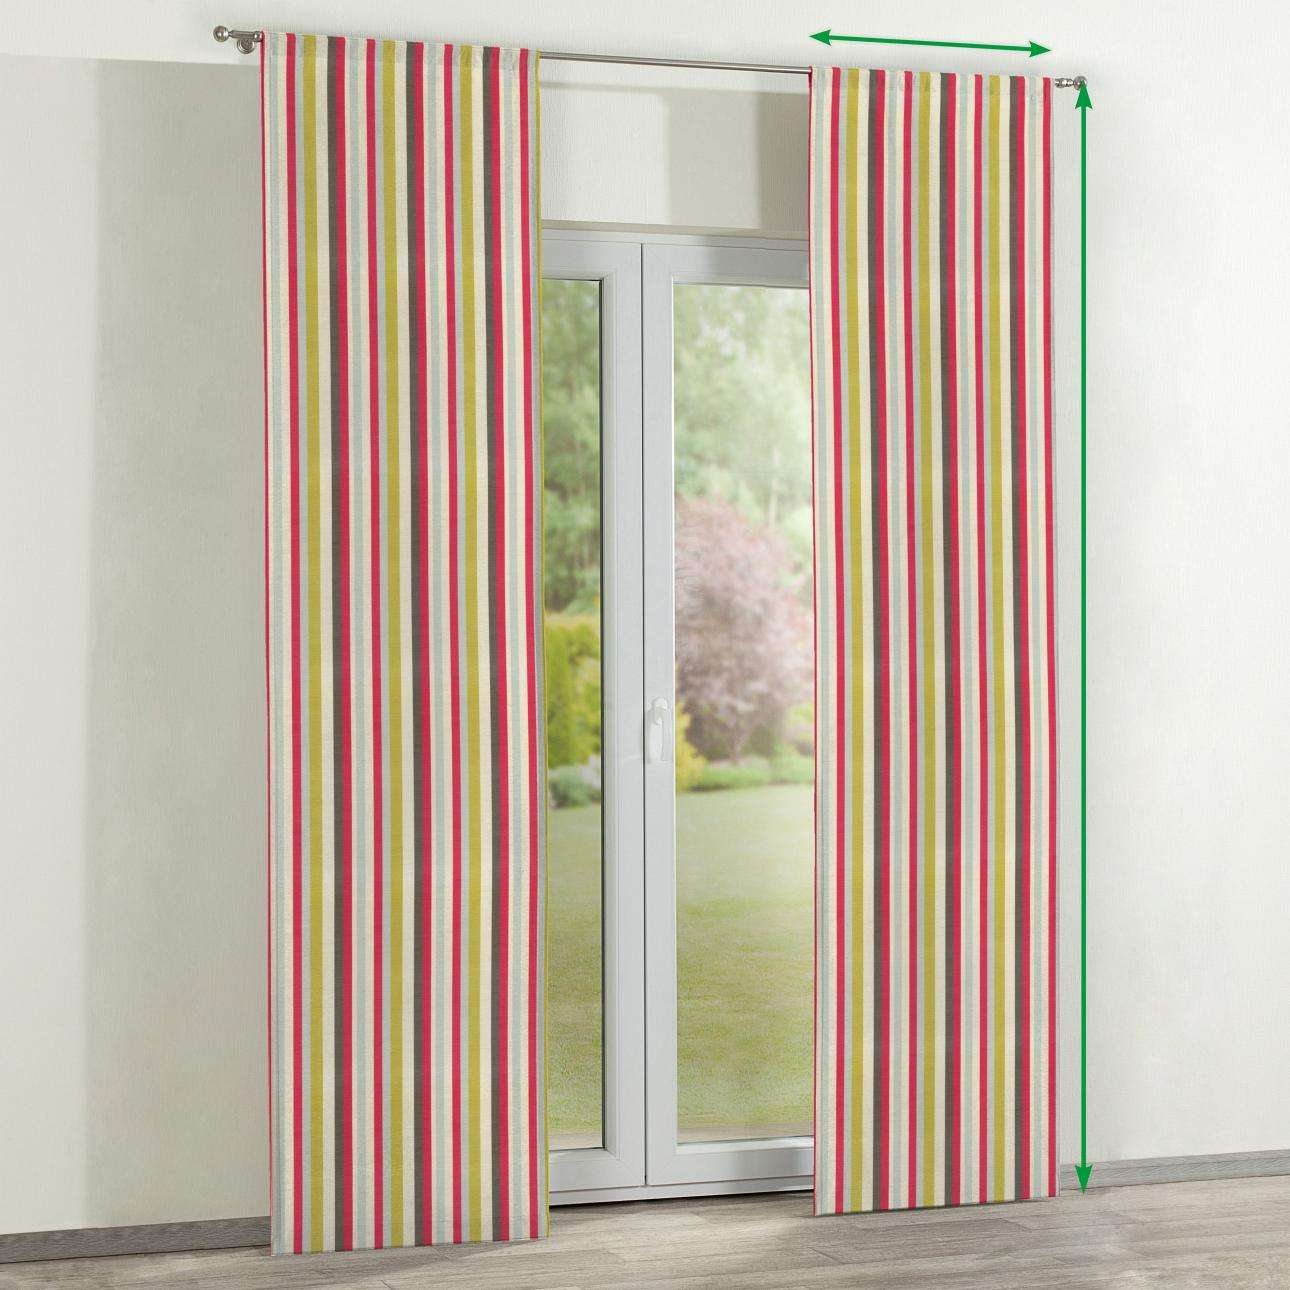 Slot panel curtains – Set of 2 in collection Norge, fabric: 140-81